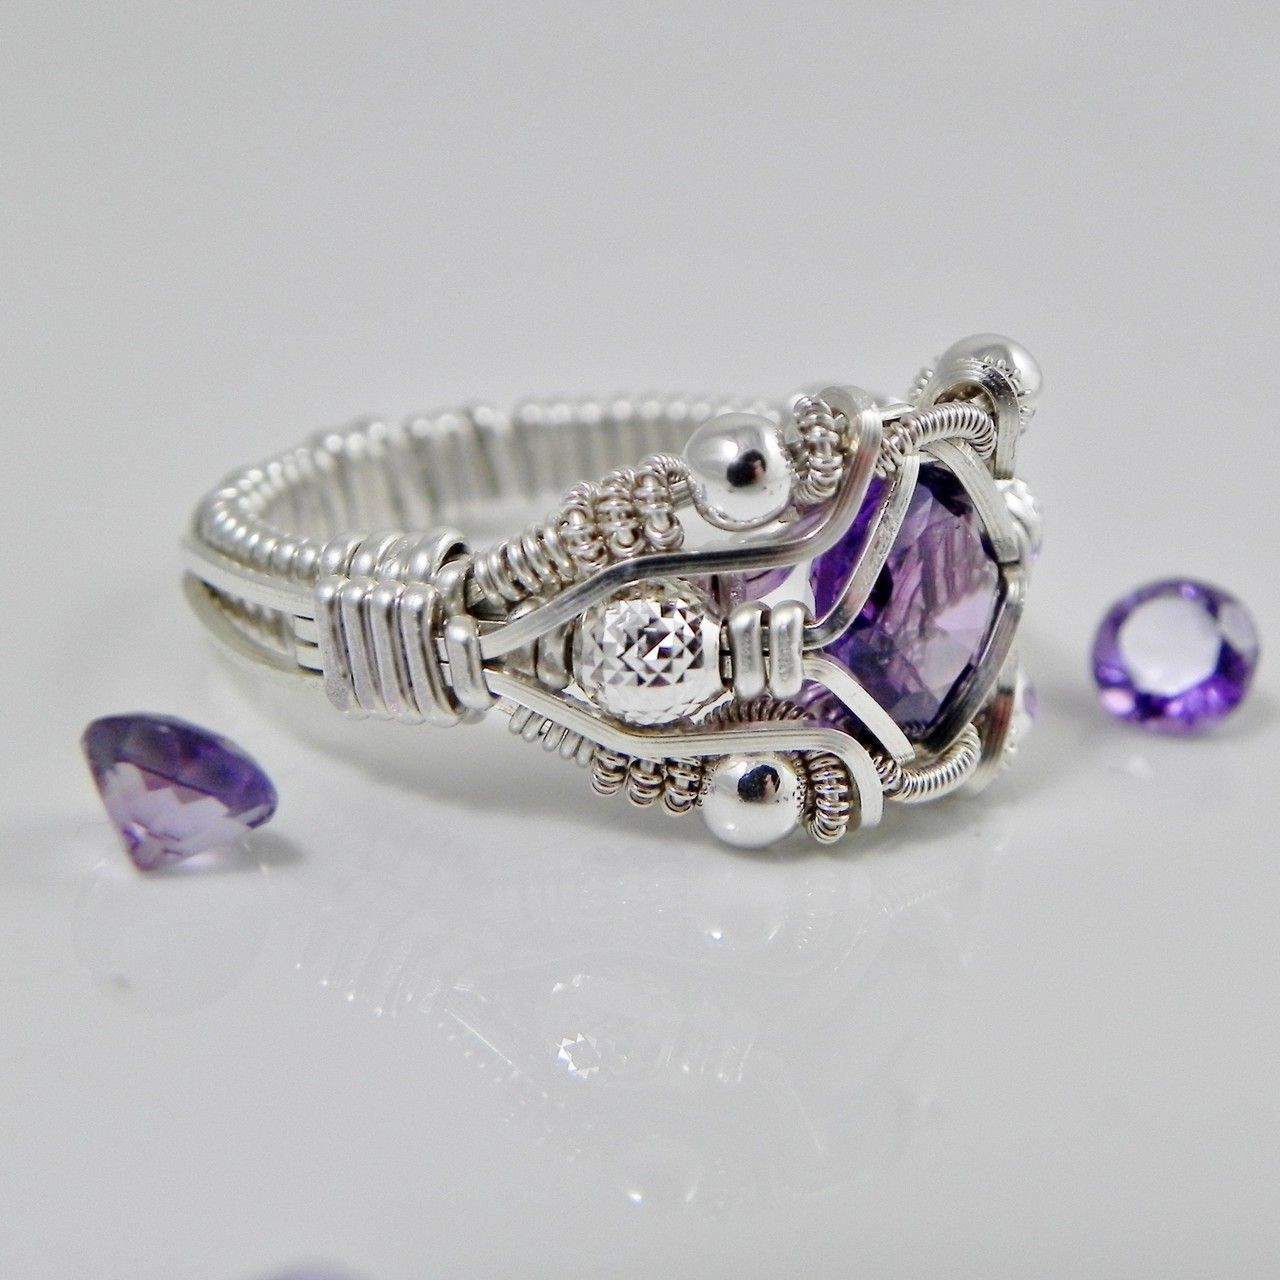 Gemstone Wire Wrapped Amethyst Ring Silver Handmade Fair Trade USA ...